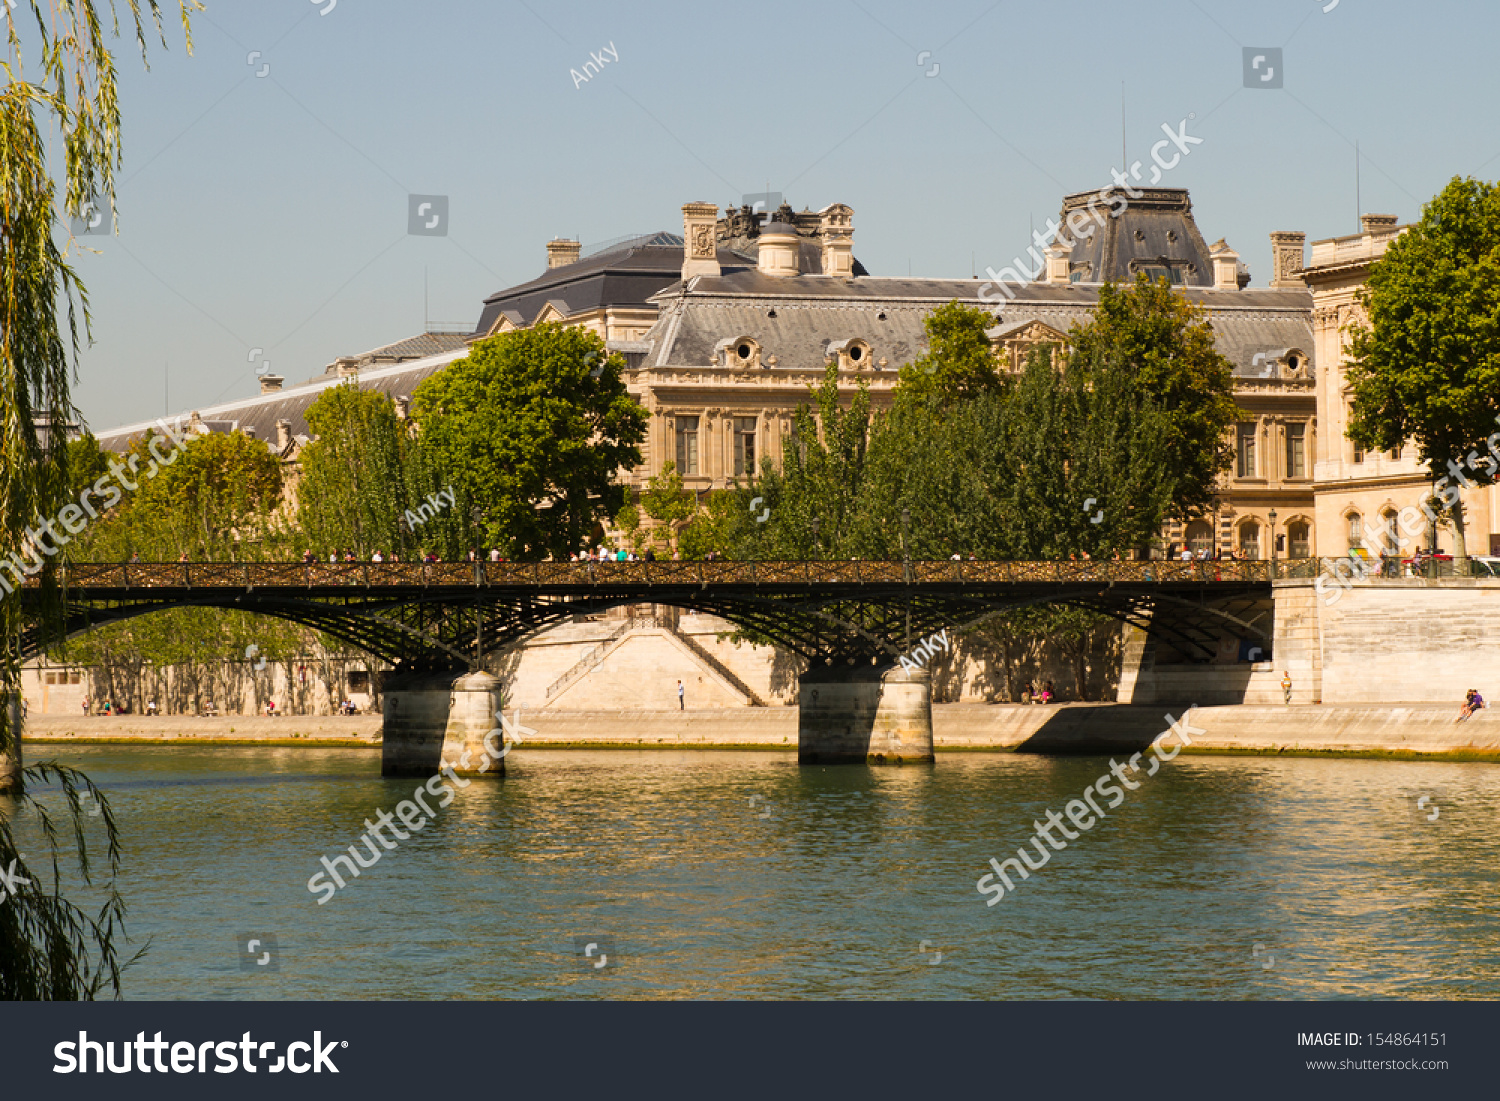 The love locks les cadenas de l 39 amour at pont des arts on september 3 - Le pont de lamour a paris ...